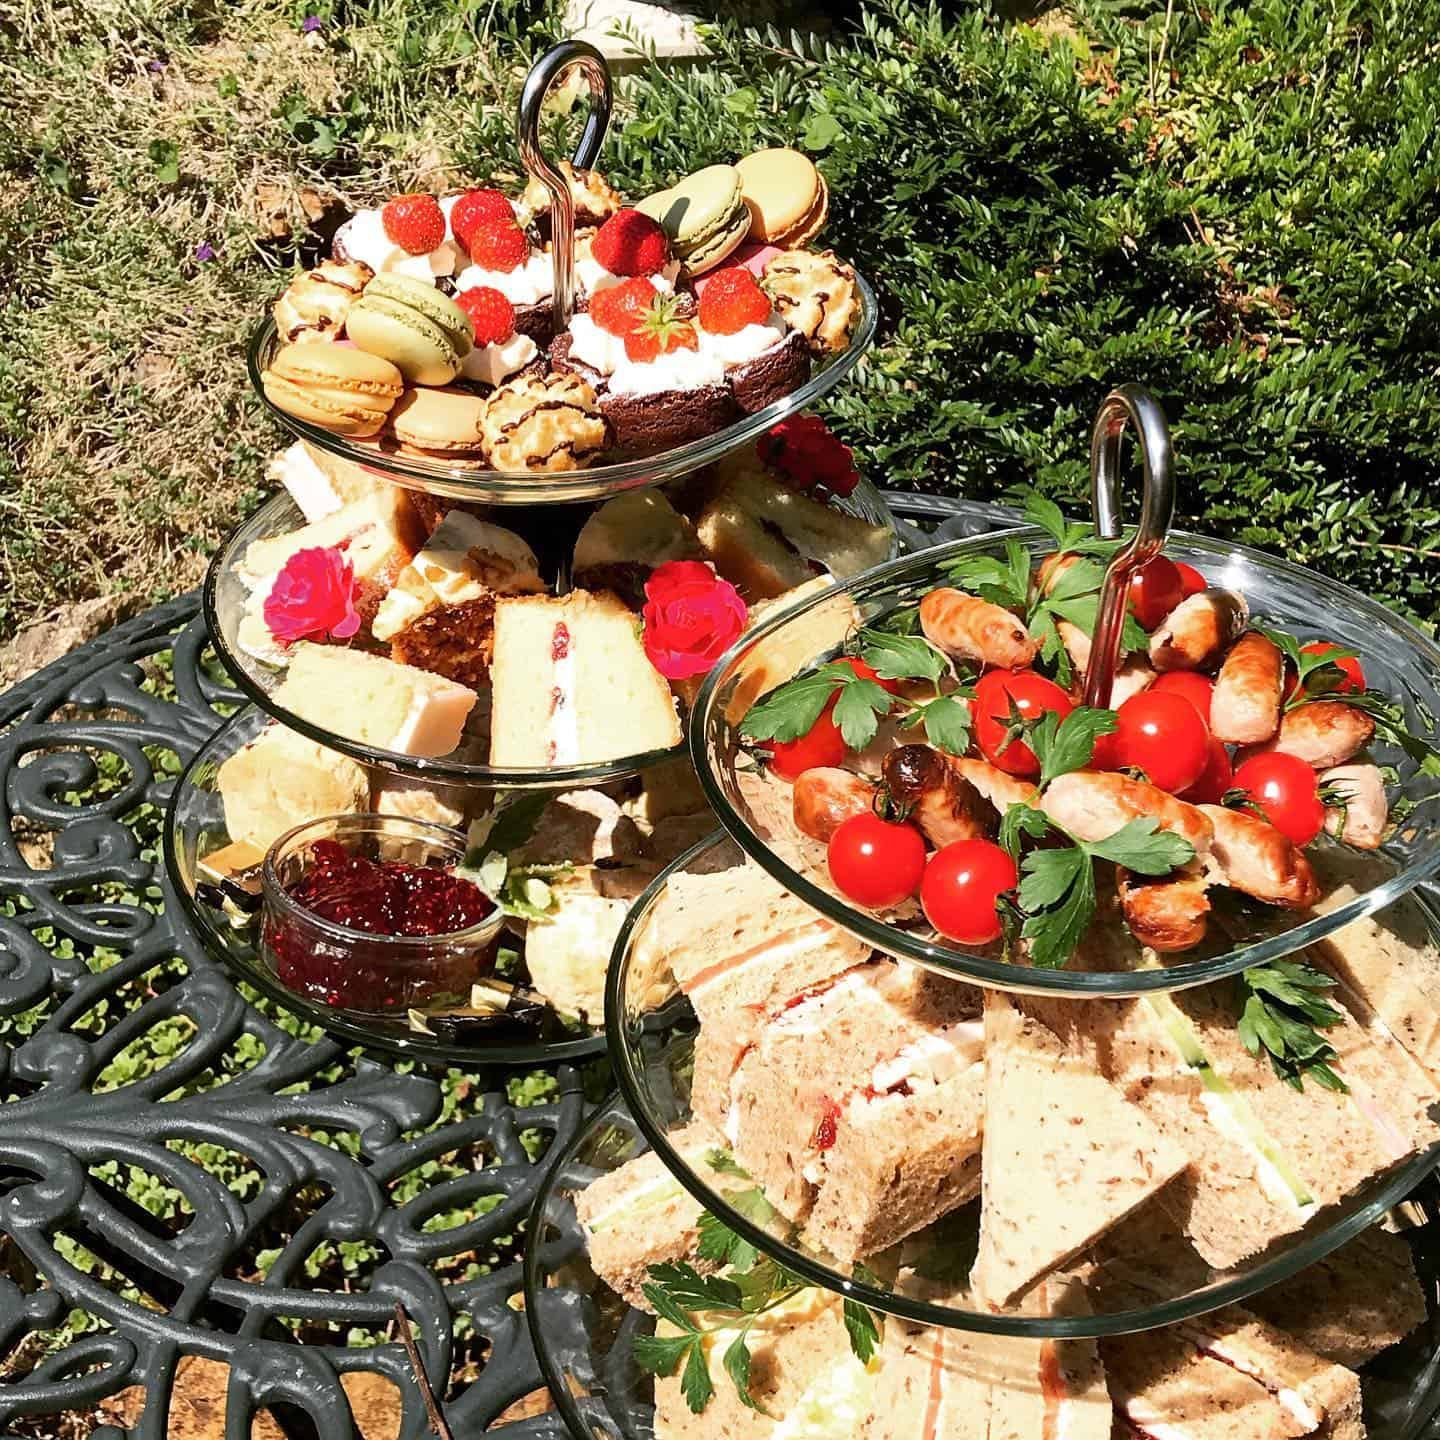 Afternoon Tea delivery by Foxes Catering